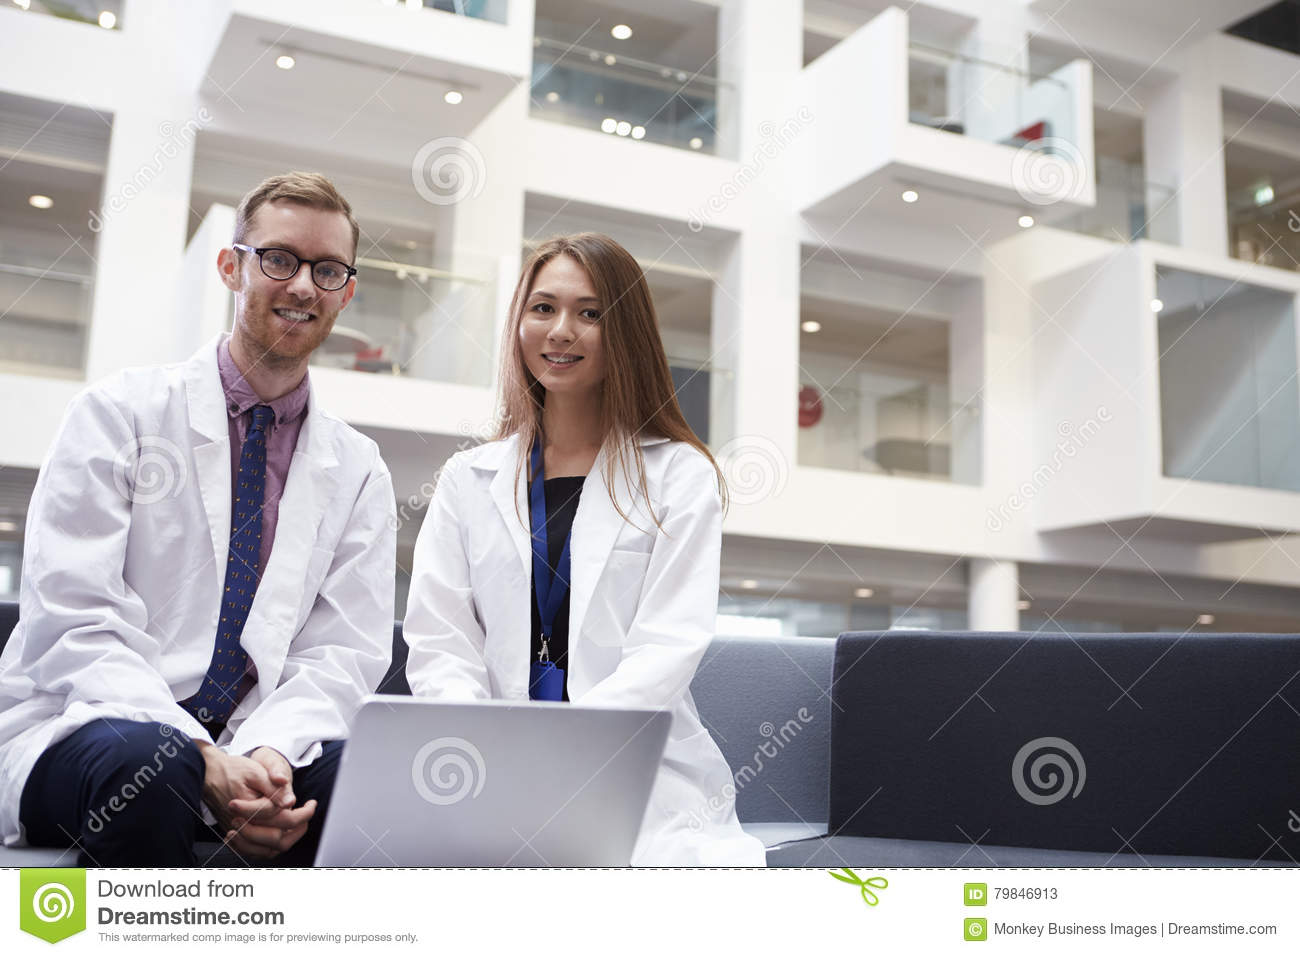 Portrait Of Two Doctors Meeting In Hospital Reception Area